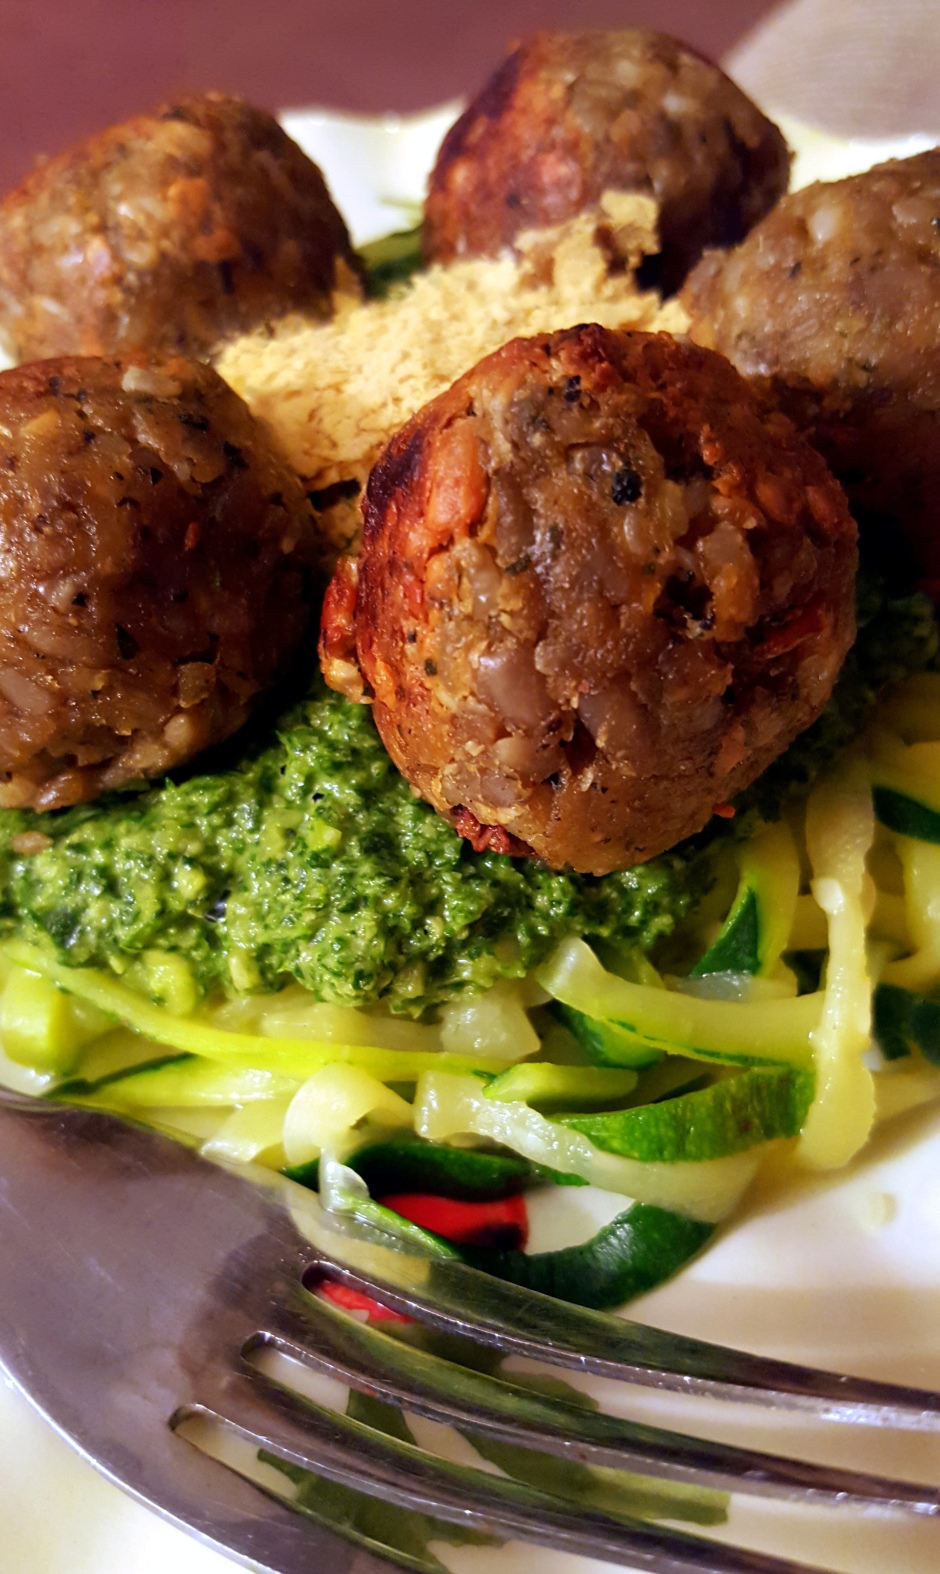 Carla Lee's Nut Balls served with Zucchini Noodles and Arugula Pesto #vegprodrev #vegan #glutenfree #xgfx